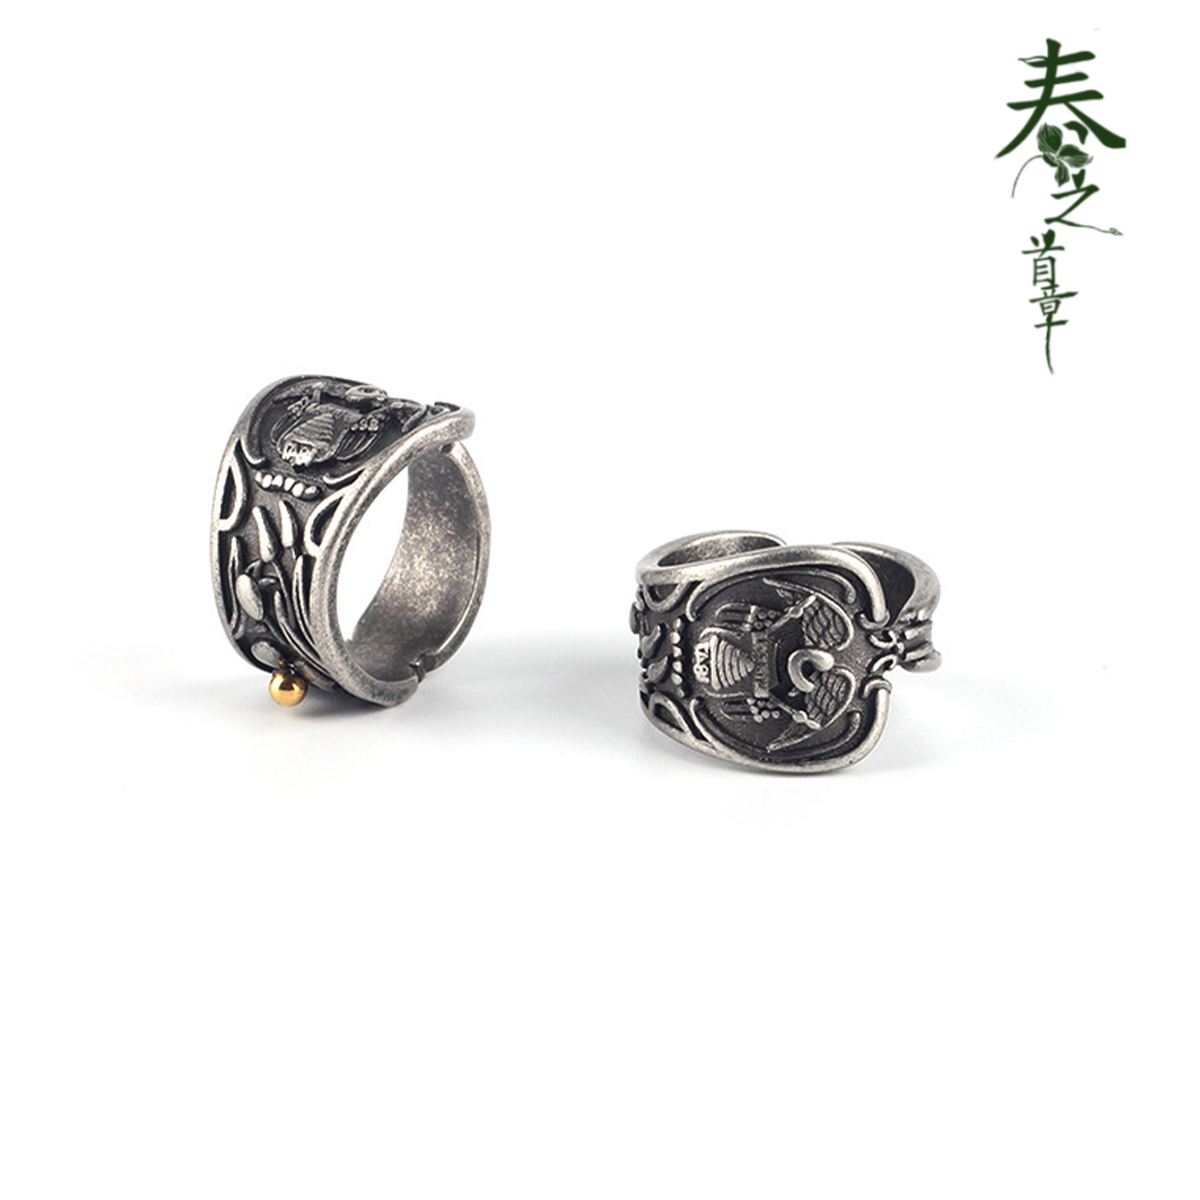 The first chapter of spring: retro style coin ring, American couple, xiaozhongchao brand, creative design, ring jewelry, hip hop